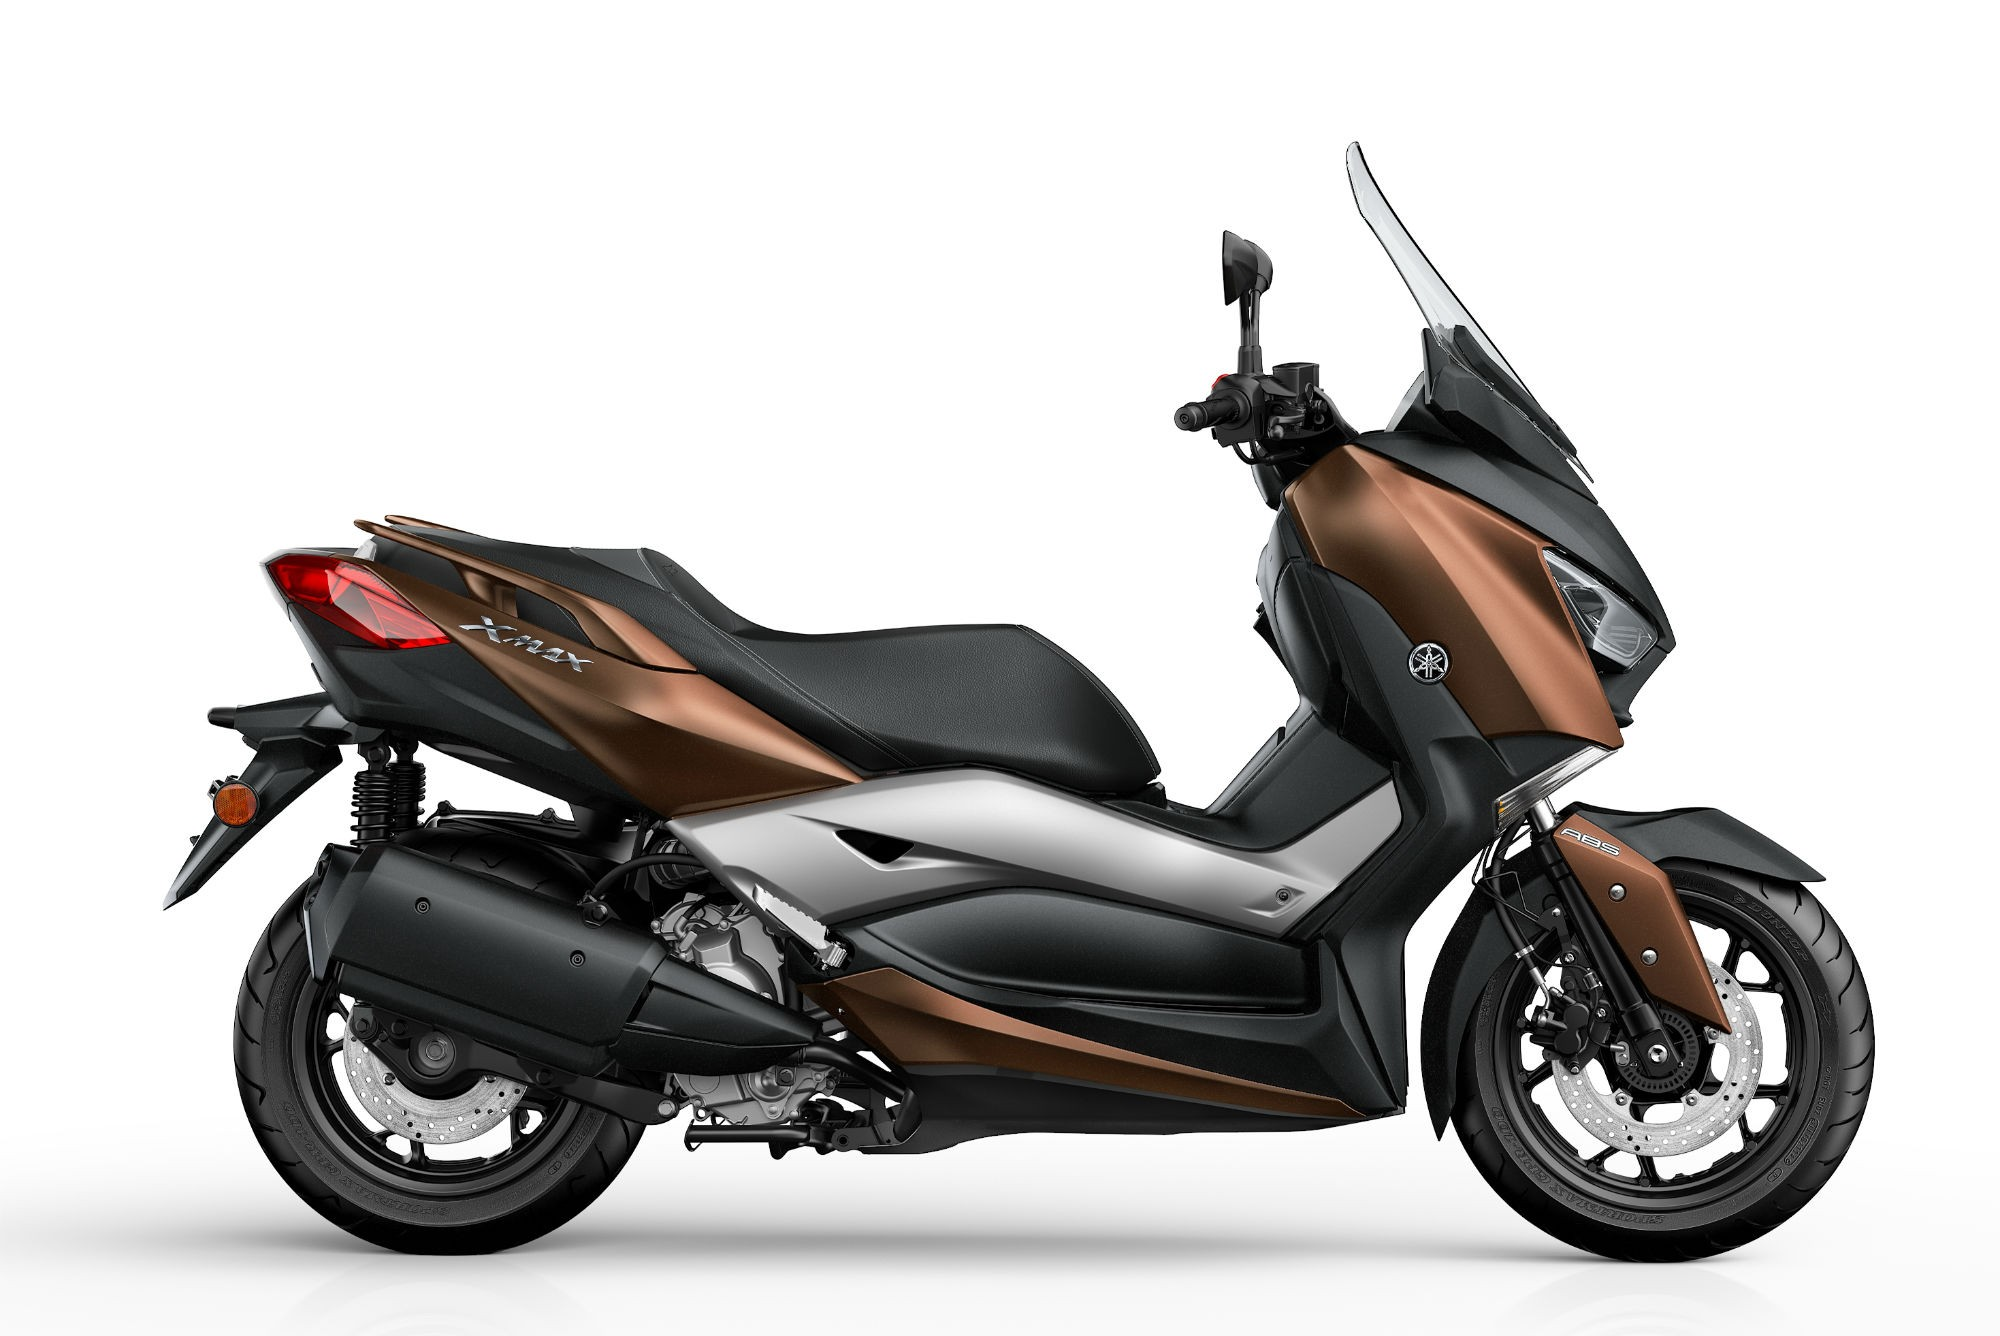 New Honda Forza 300 2018 >> Yamaha Introducing New X-MAX 300 Scooter - autoevolution